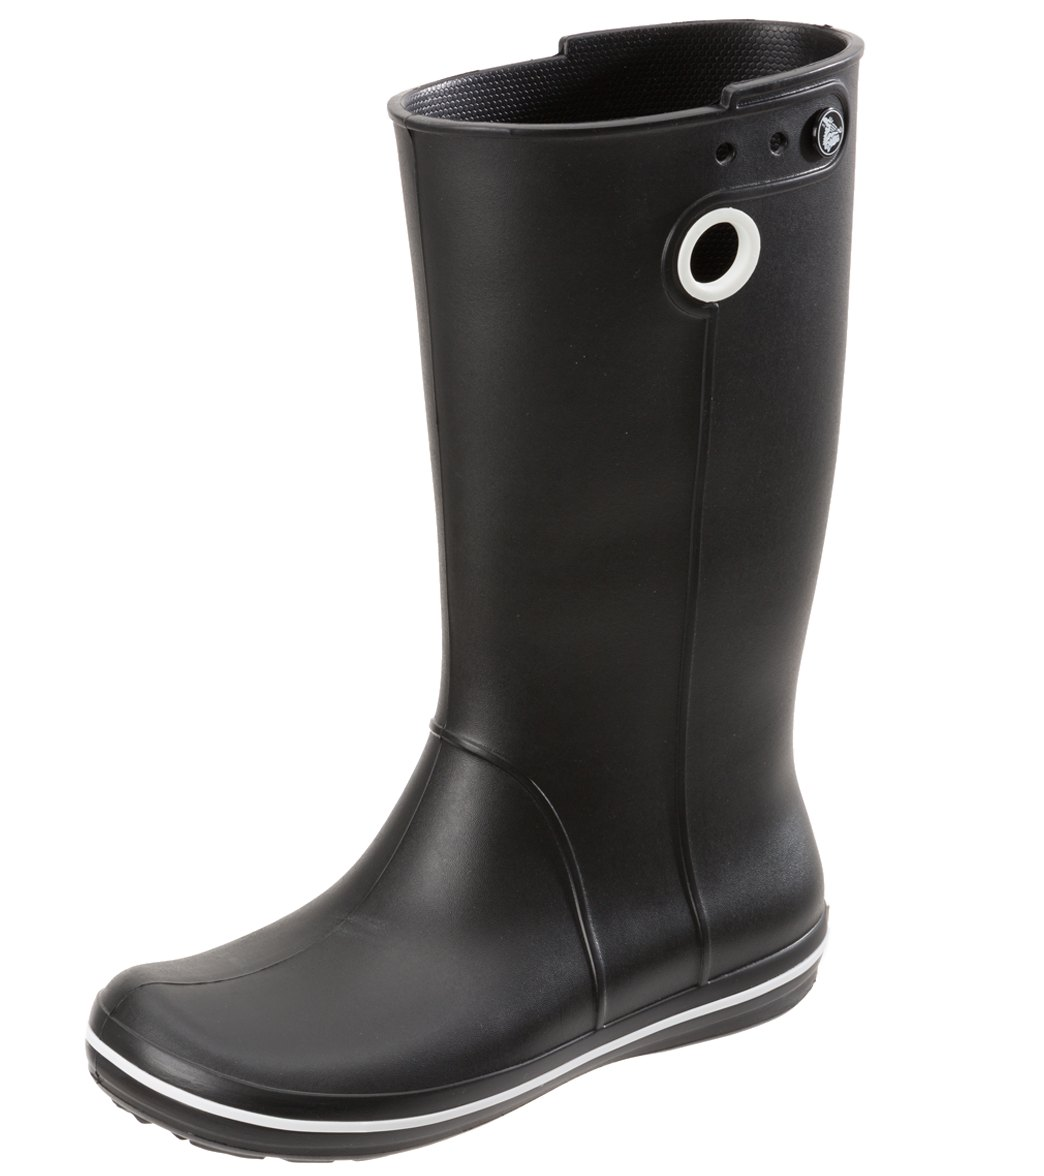 55fb7f50f Crocs Women s Crocband Jaunt Rainboot at SwimOutlet.com